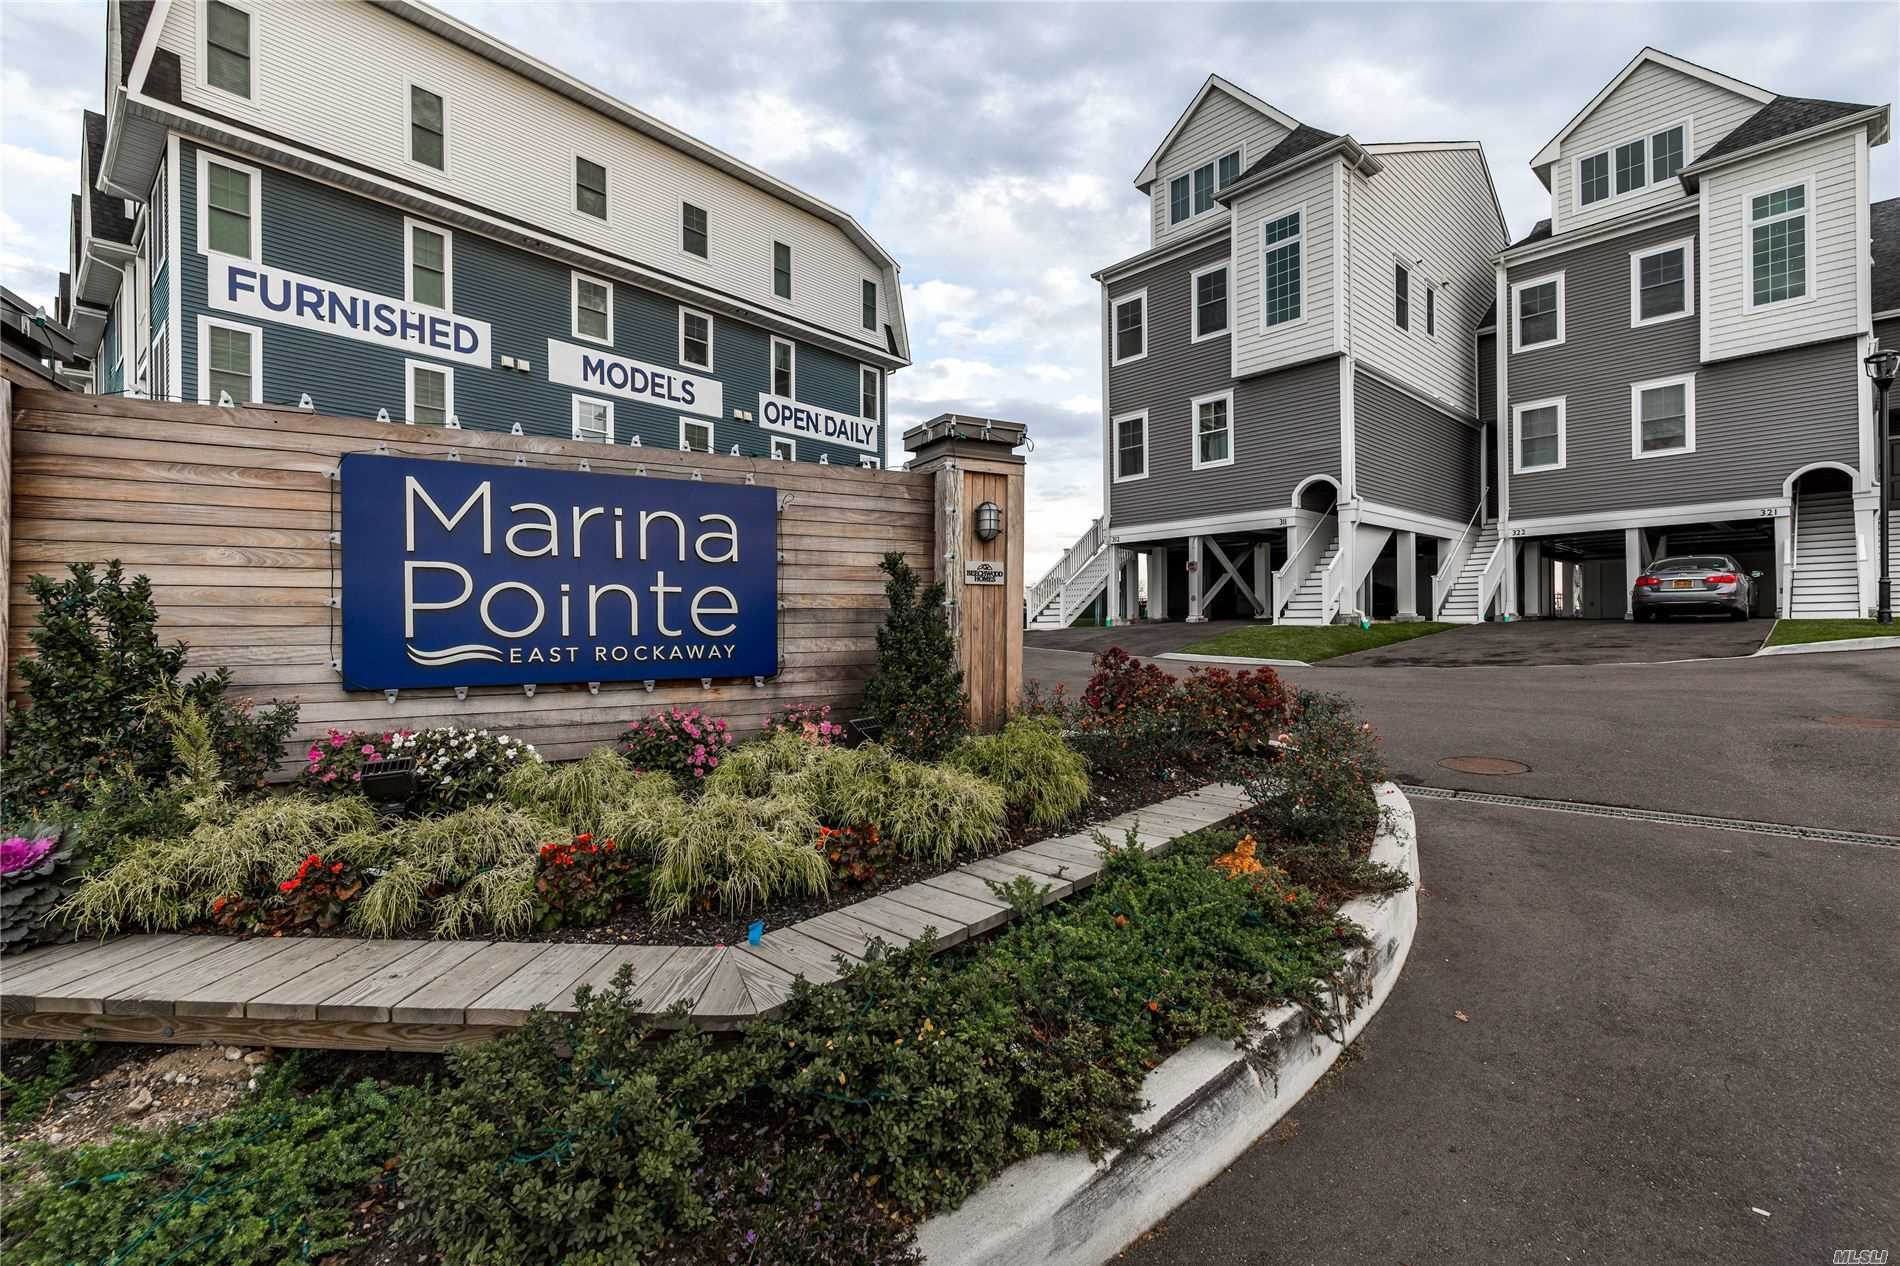 Property for sale at 224 Marina Pointe Dr Unit 224, East Rockaway,  New York 11518